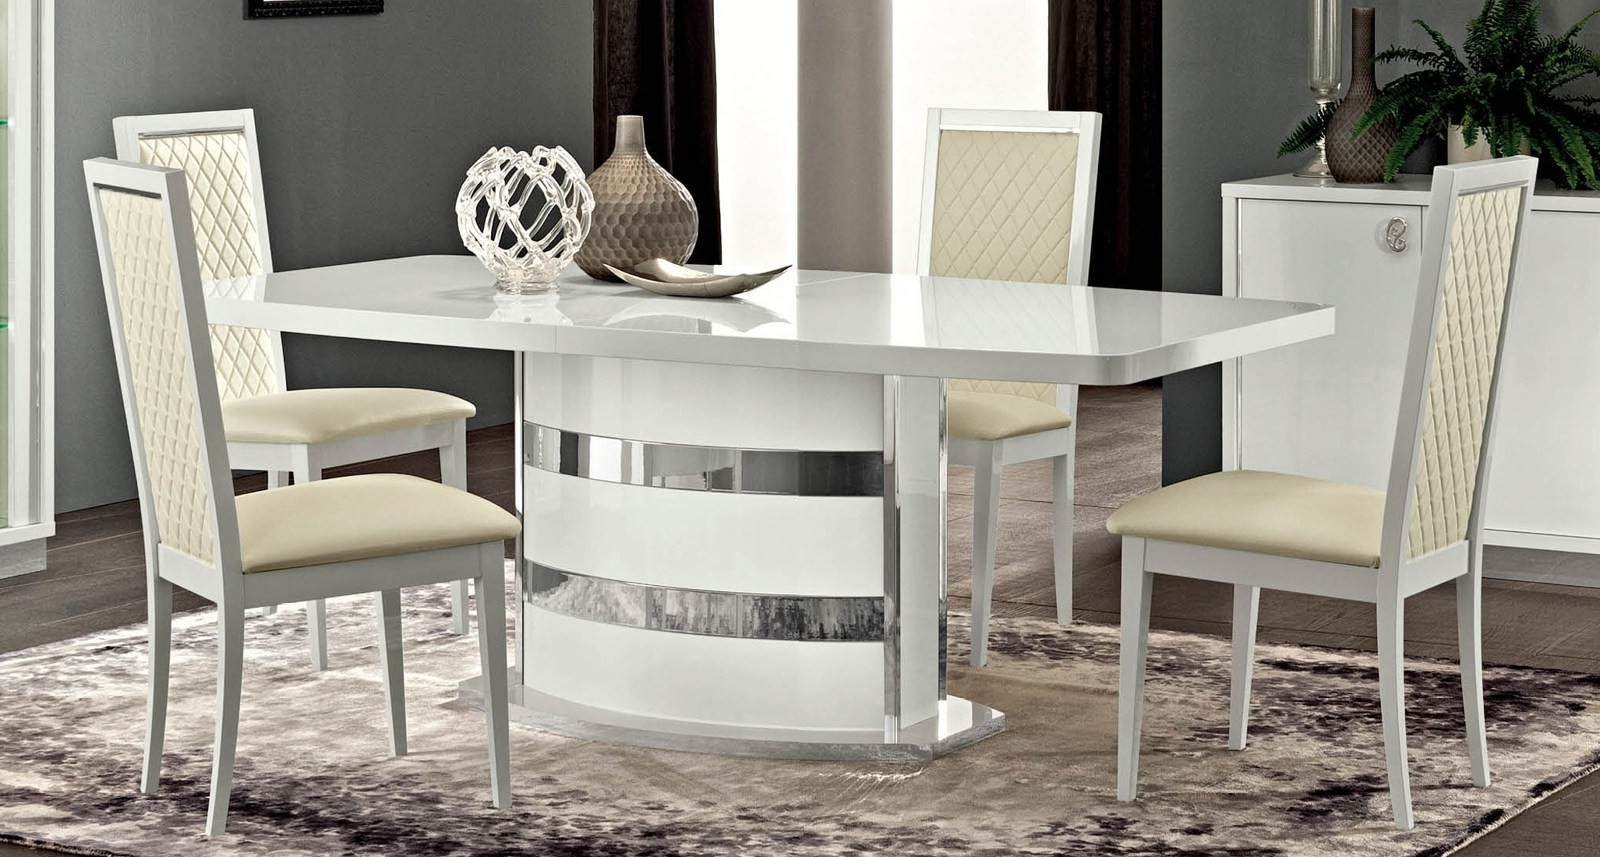 Most Up To Date Esf Esf Furniture Roma 7Pcs Dining Room Set In White – Roma With Regard To Roma Dining Tables And Chairs Sets (View 5 of 25)